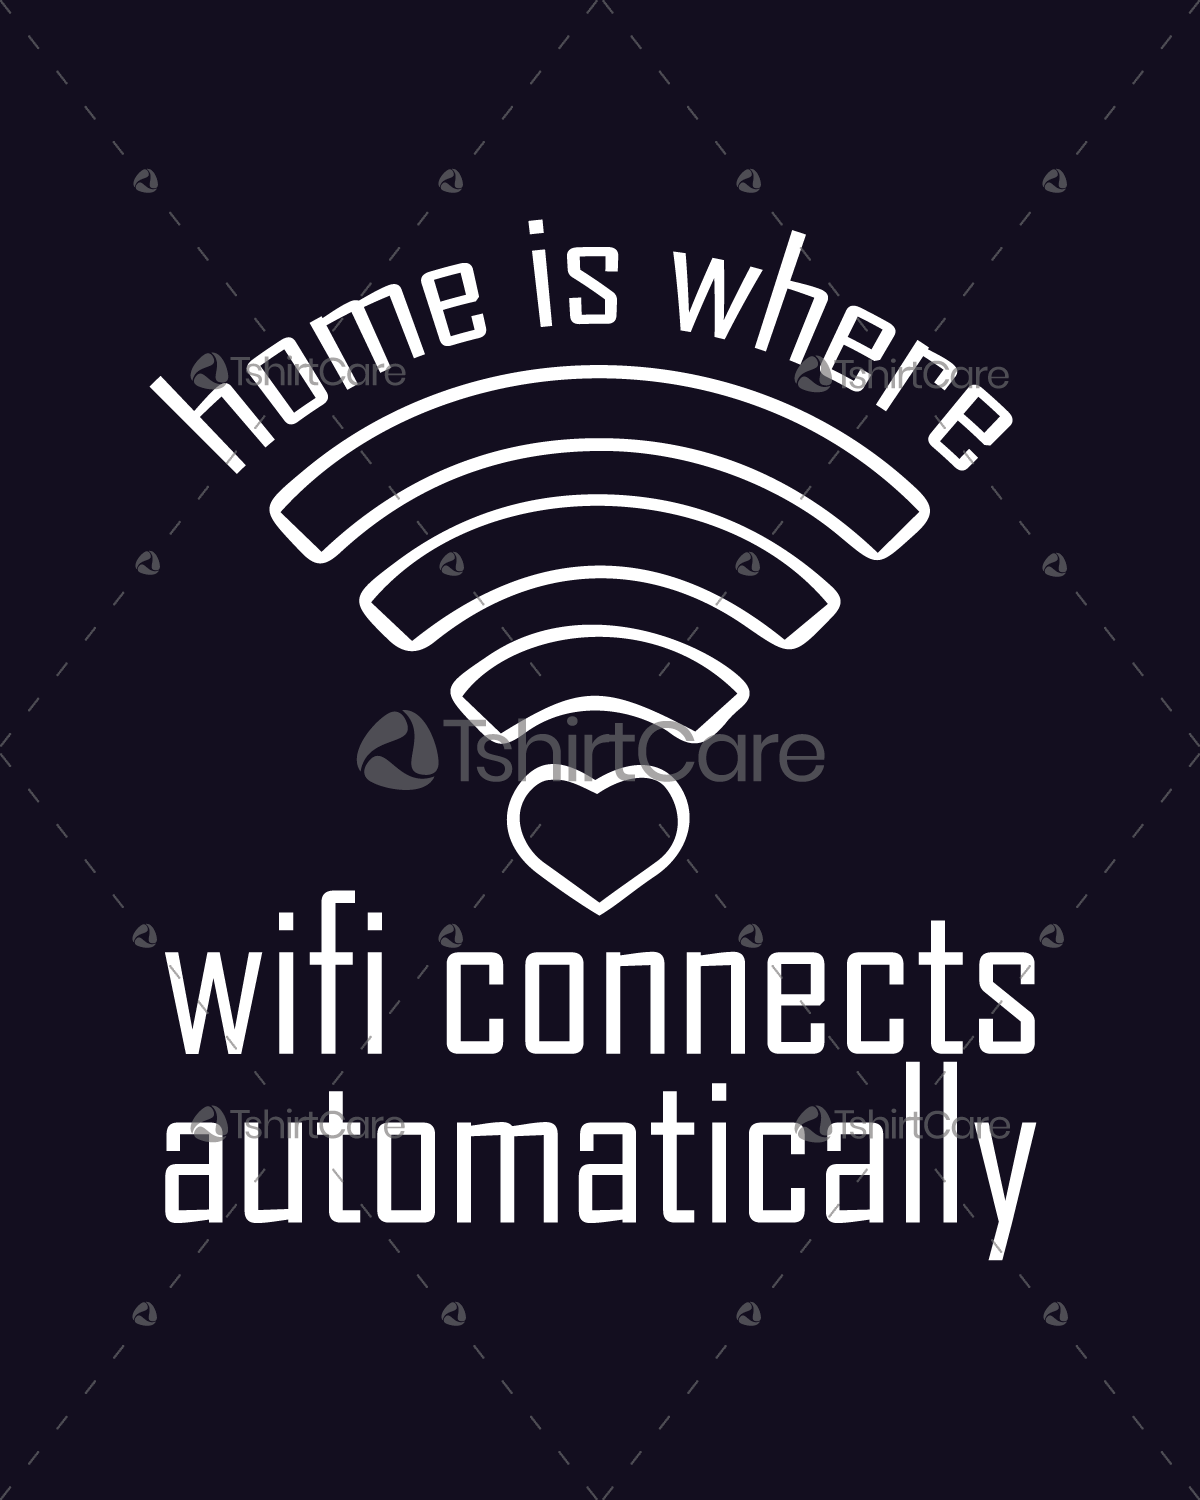 cddf357c3 Home is where wifi connects automatically T-Shirt Design Funny Humor T  shirts for Men & Women - TshirtCare